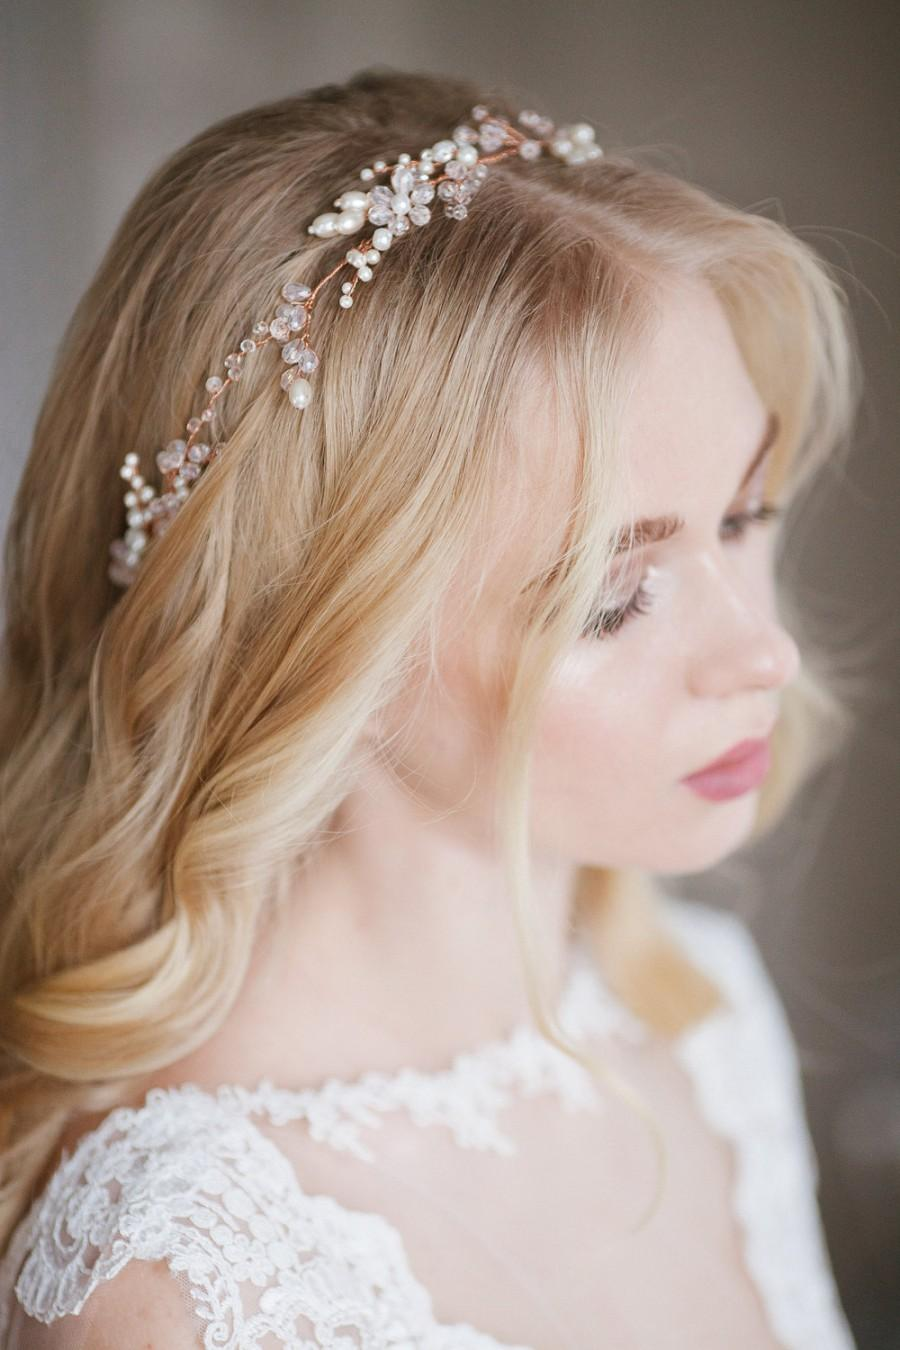 Wedding - Wedding bridal wreath of pearl beads and glass beads, bridal hair piece, bridal headpiece, wedding headpiece